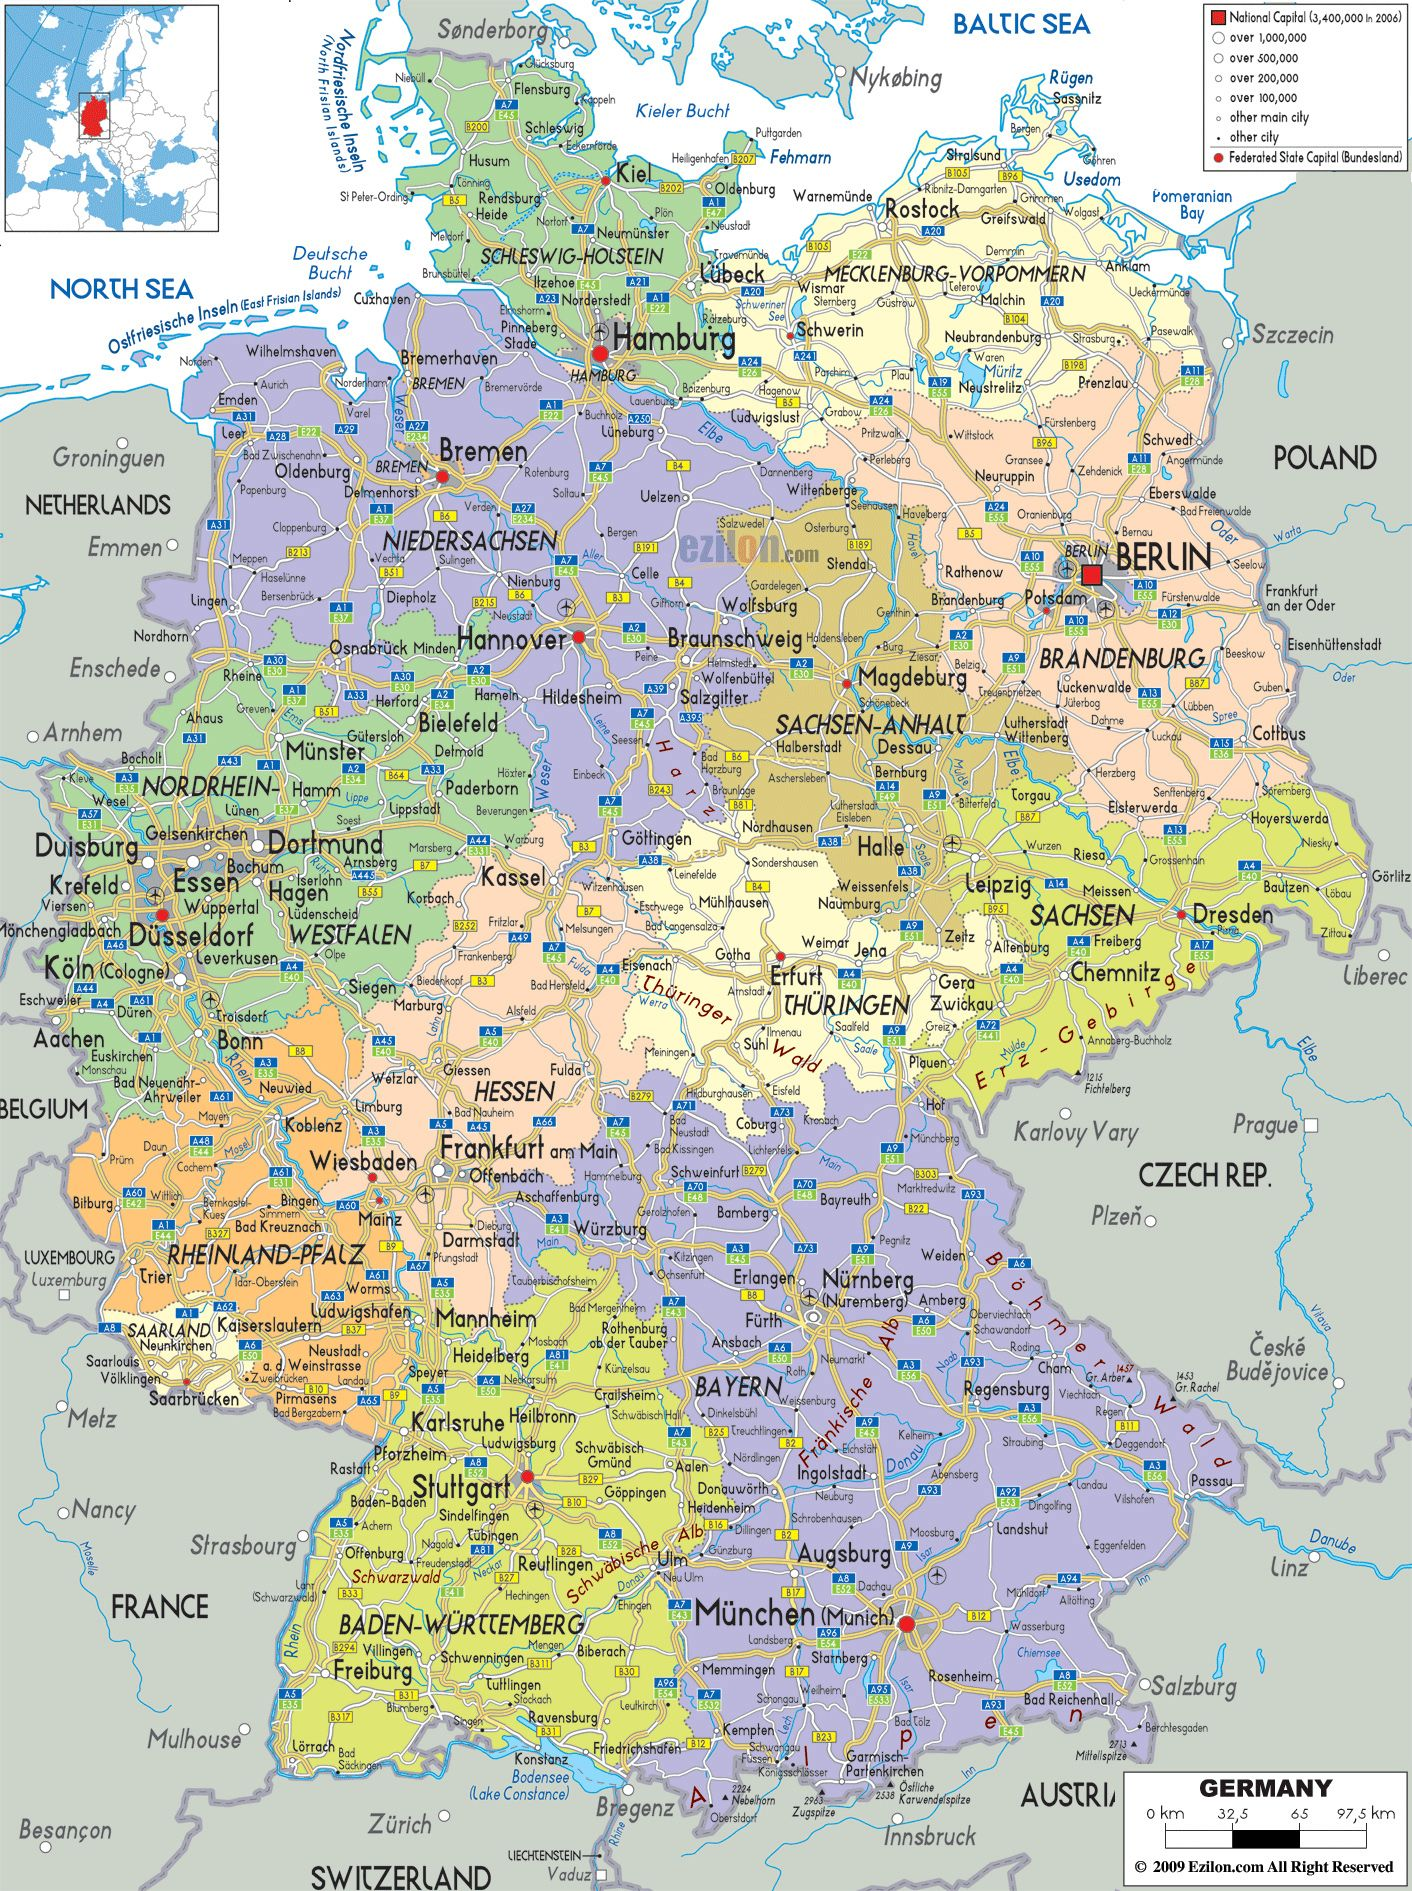 Show Map Of Germany.Pin By Lilas Melancon On Europe 2018 In 2019 Tourist Map Germany